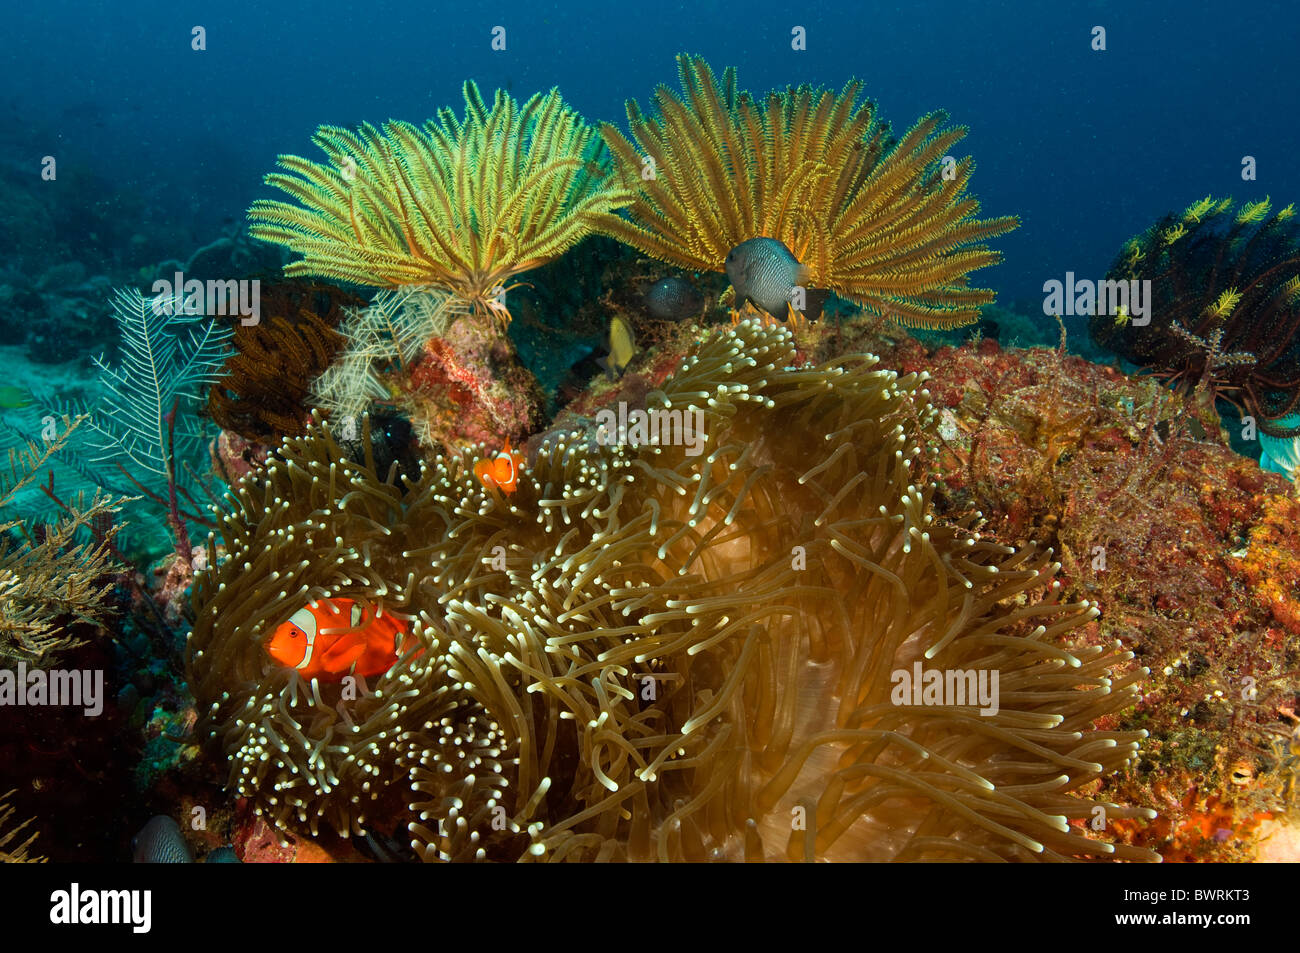 Coral reef scene and spine cheek anemonefishes, Raja Ampat Indonesia - Stock Image